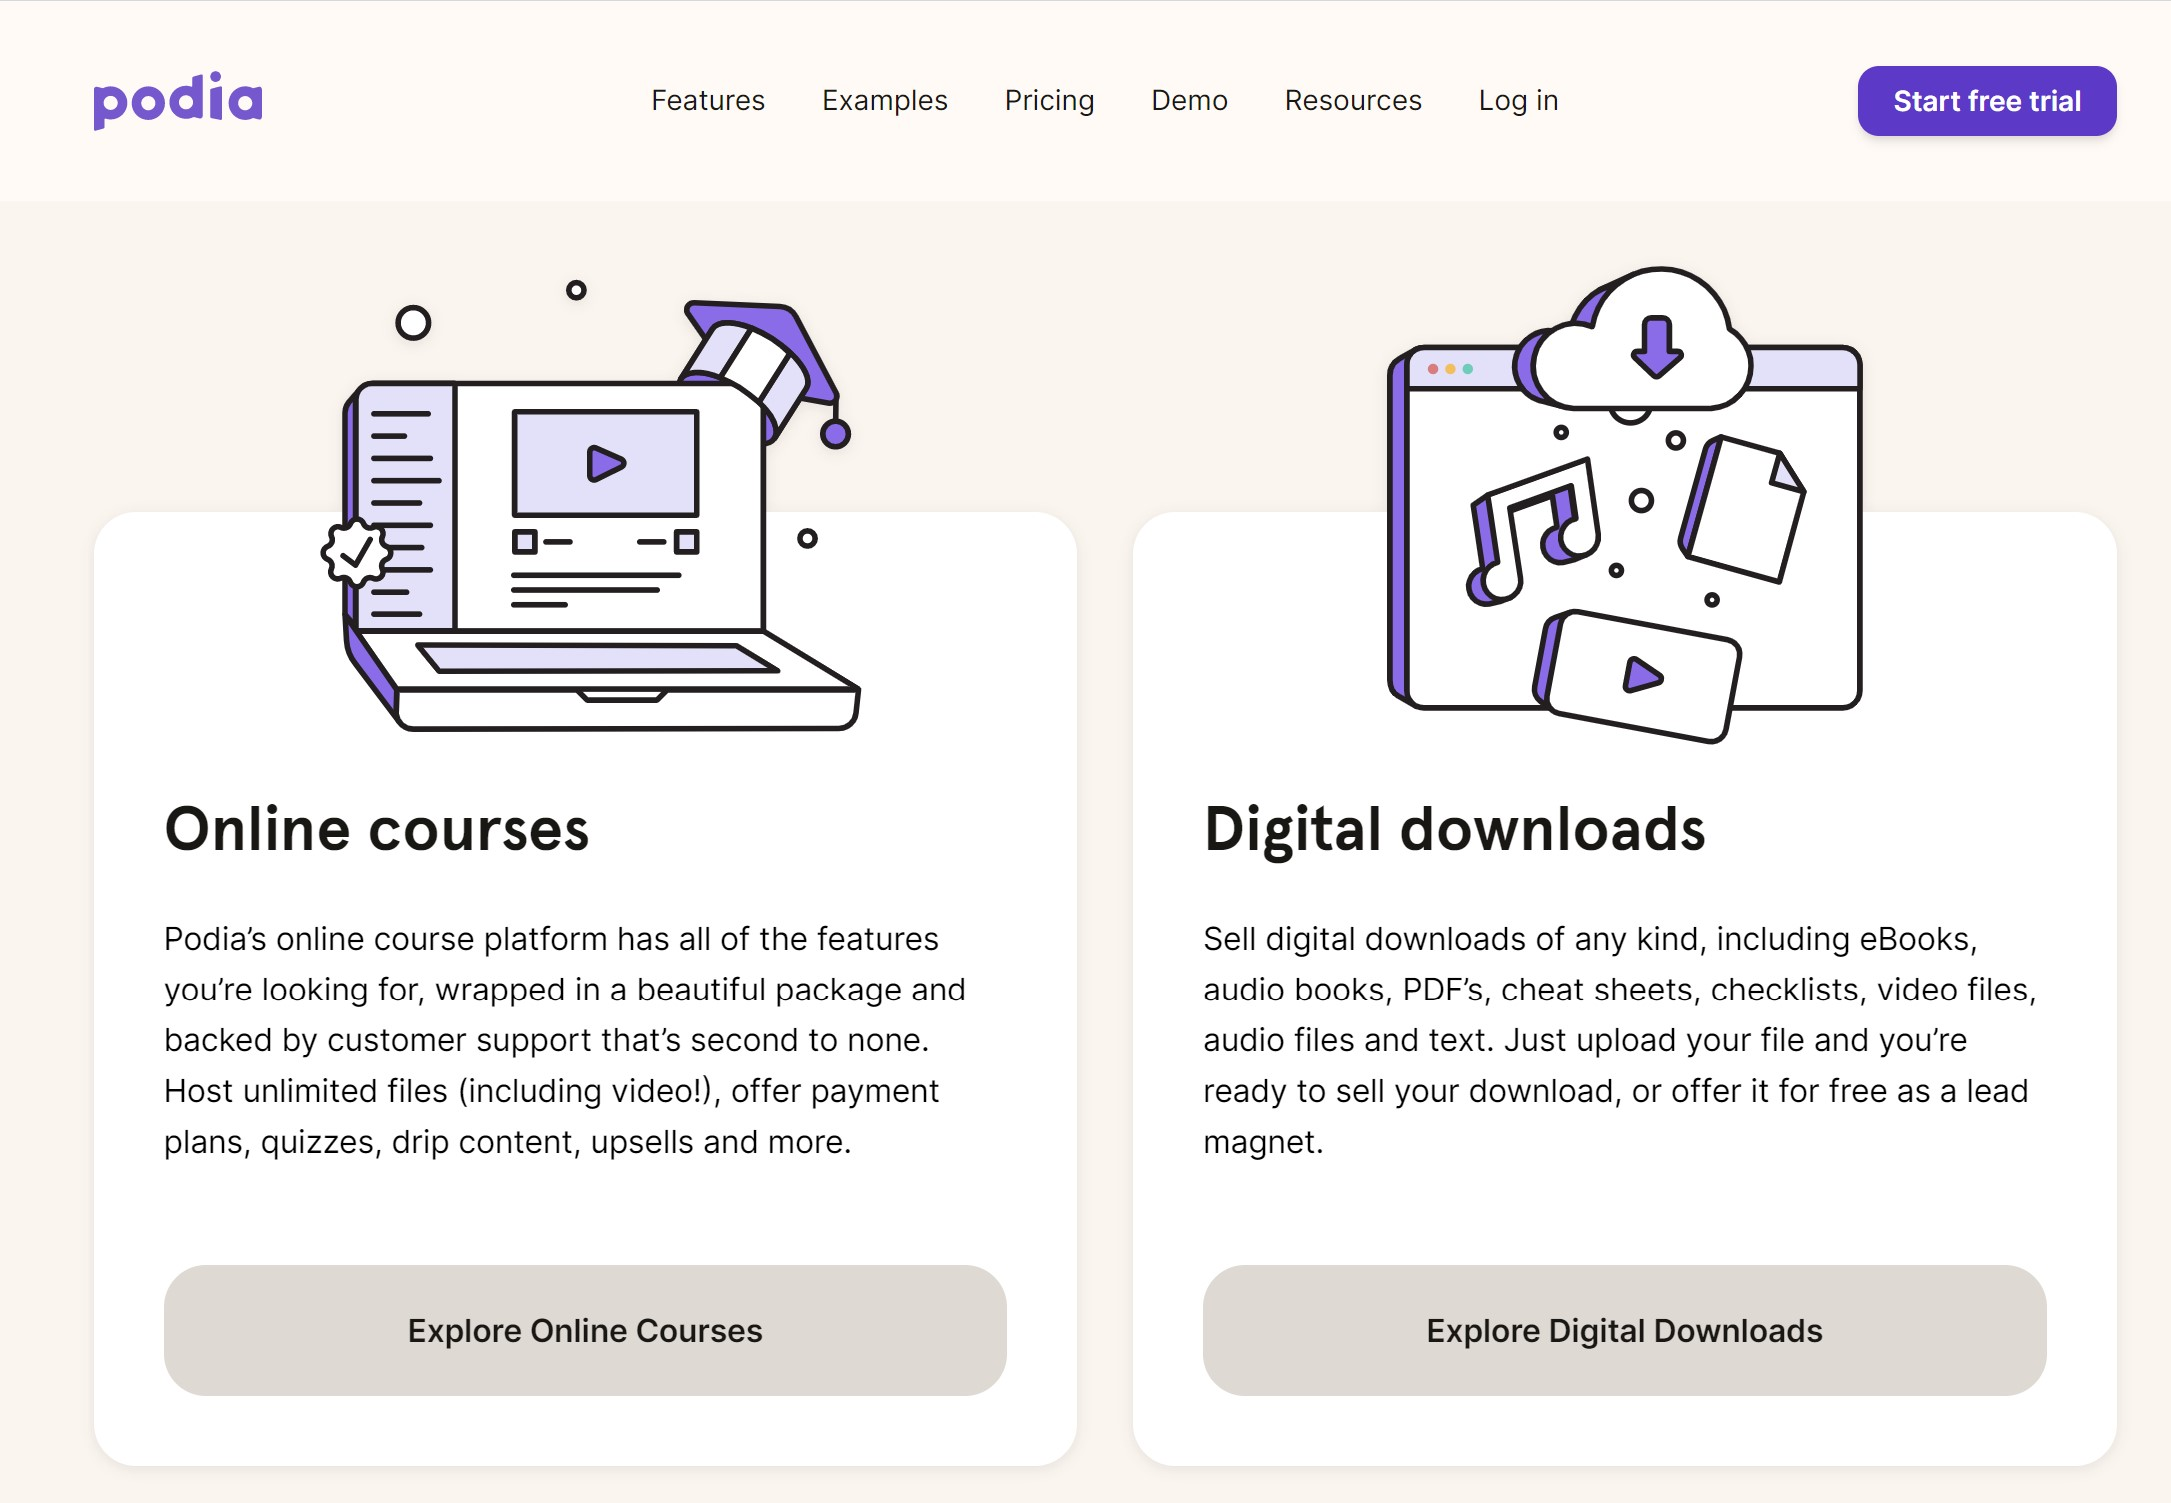 podia digital downloads and online courses